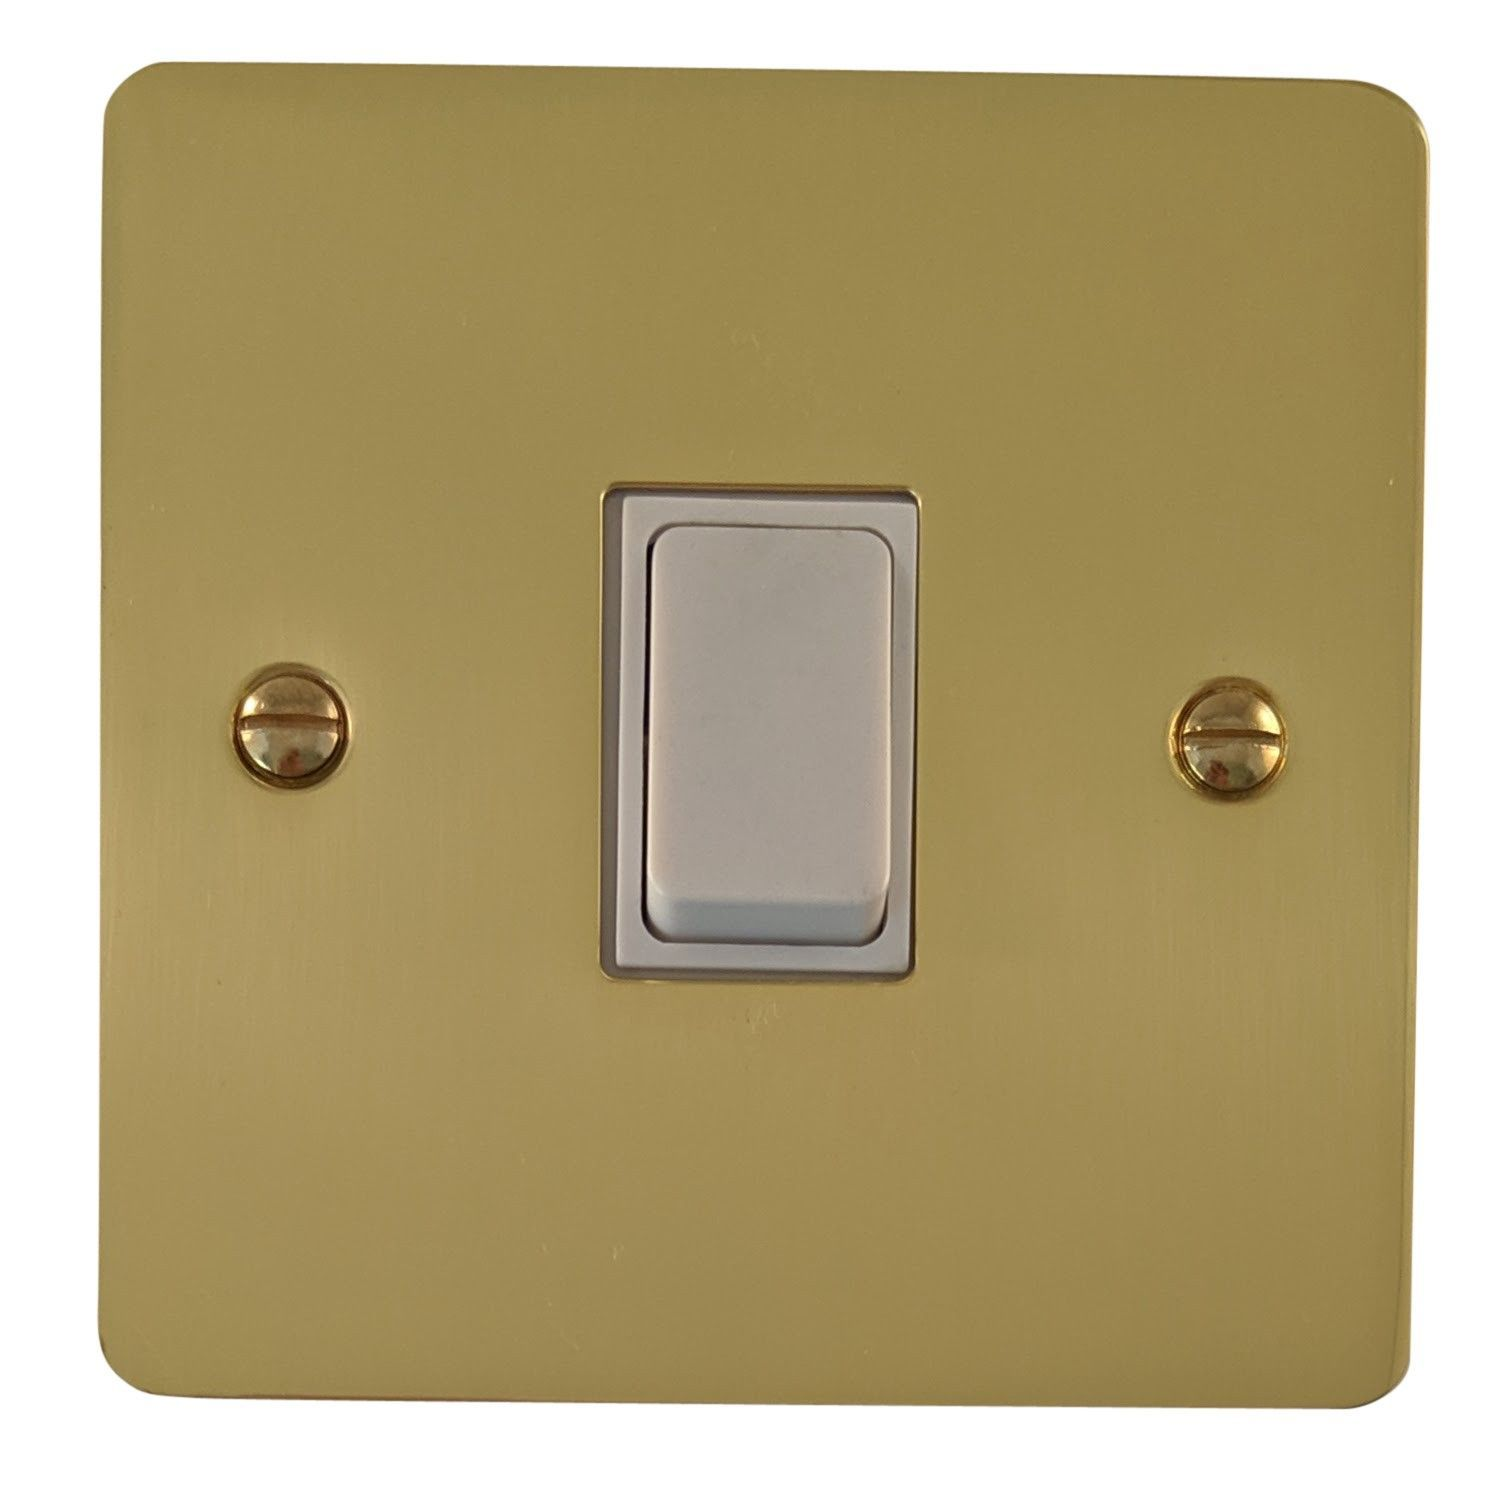 G&H FB5W Flat Plate Polished Brass 1 Gang Intermediate Rocker Light Switch